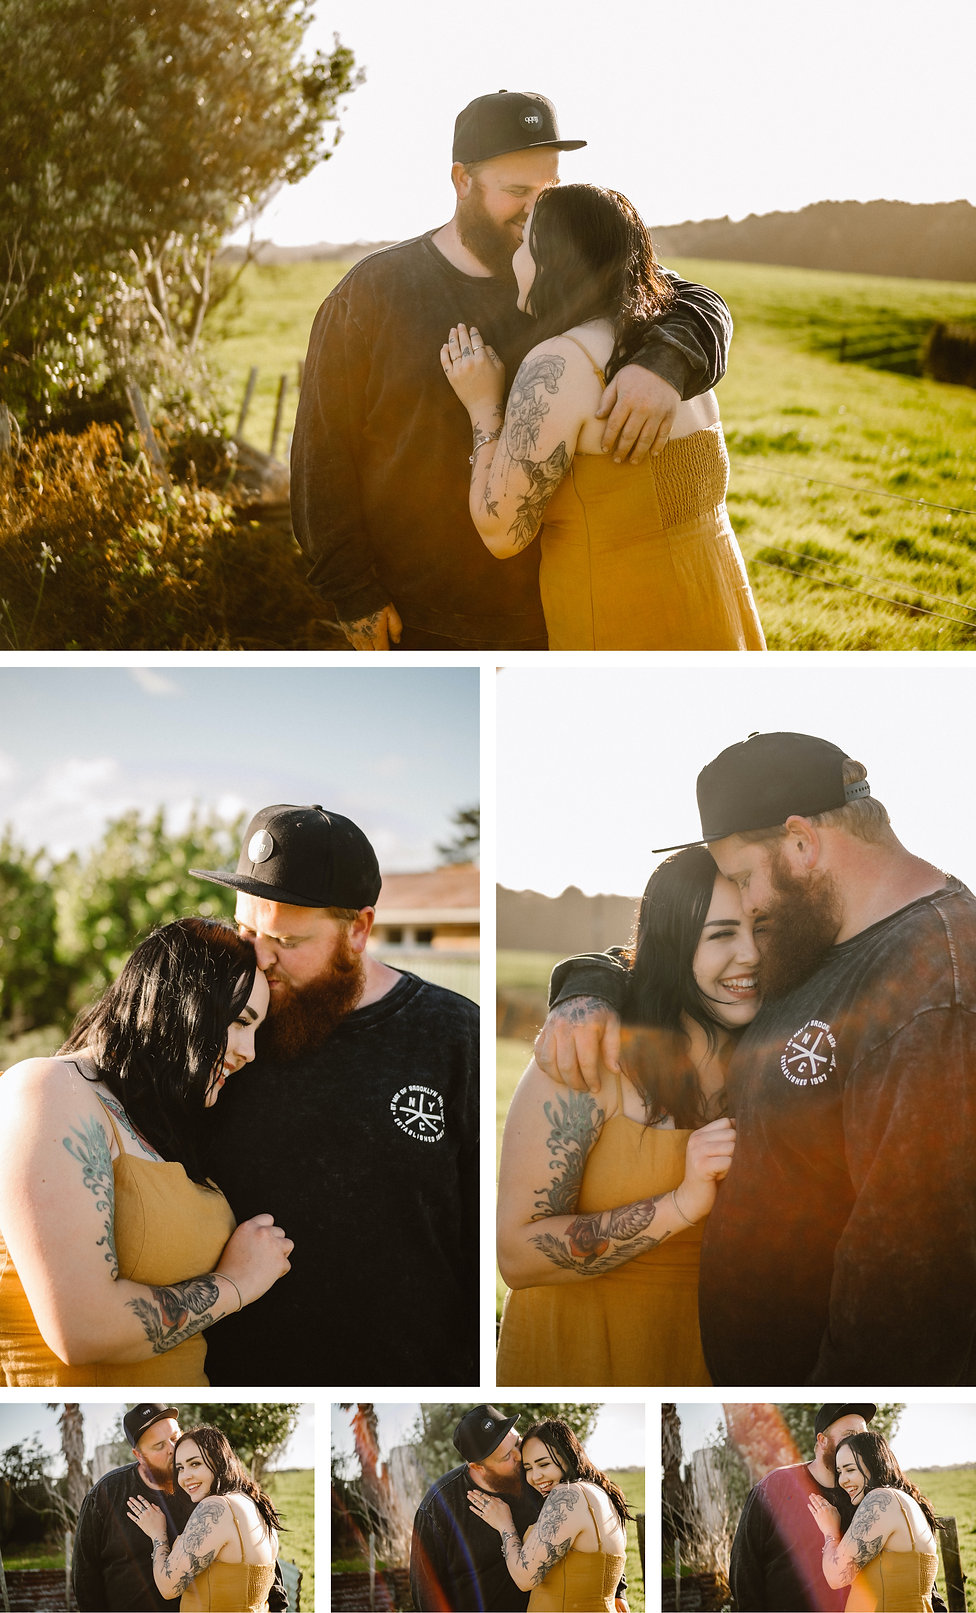 engagement session at Waiuku in Auckland, New Zealand.